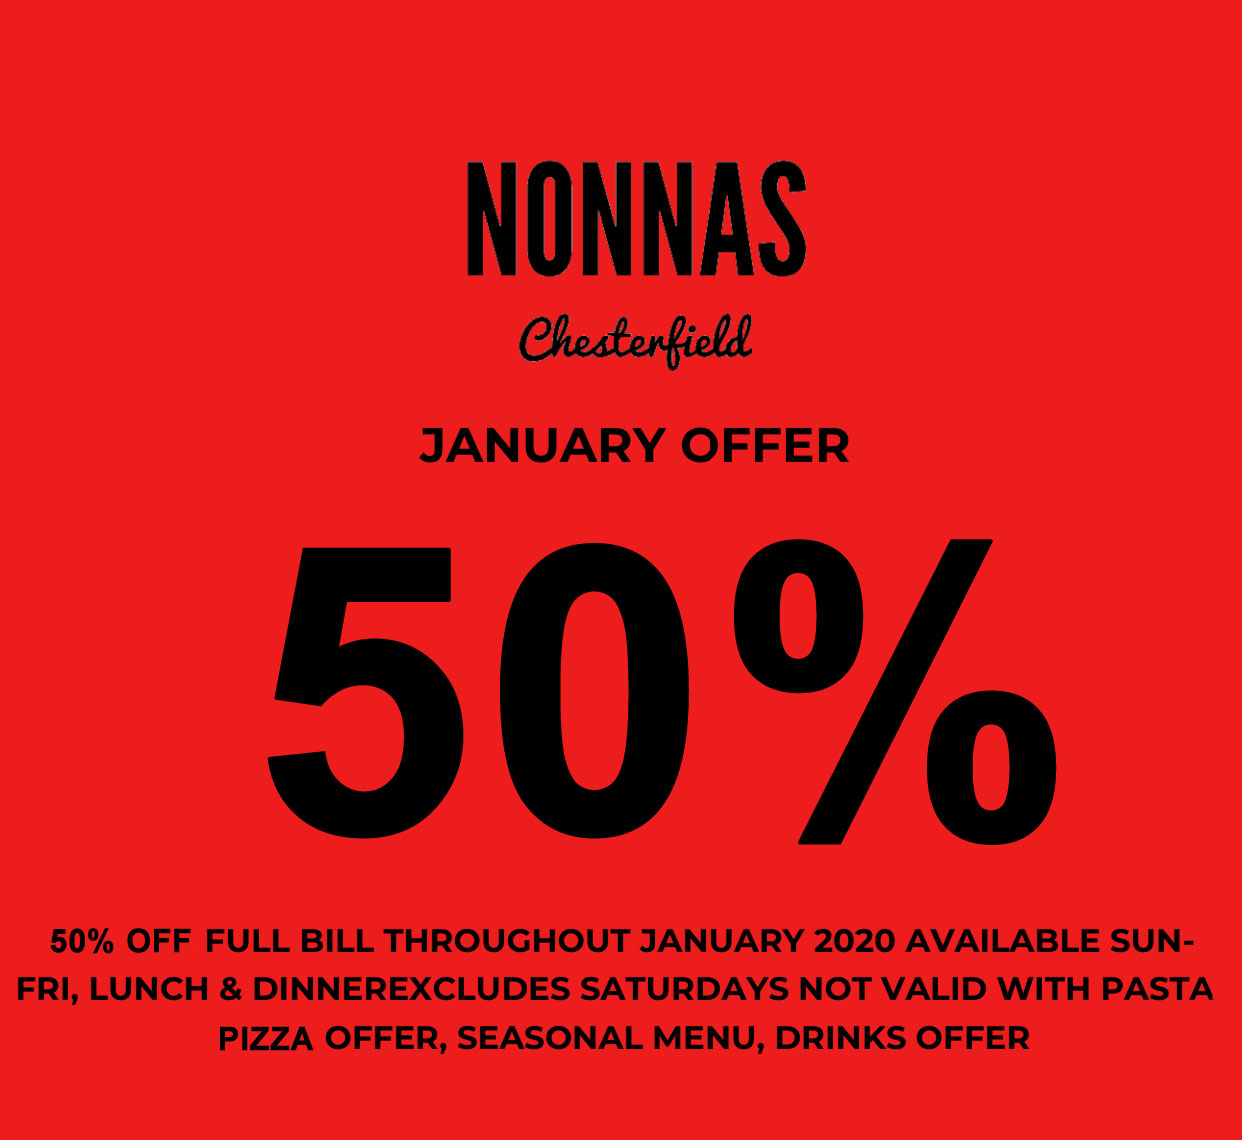 50% off your bill in January